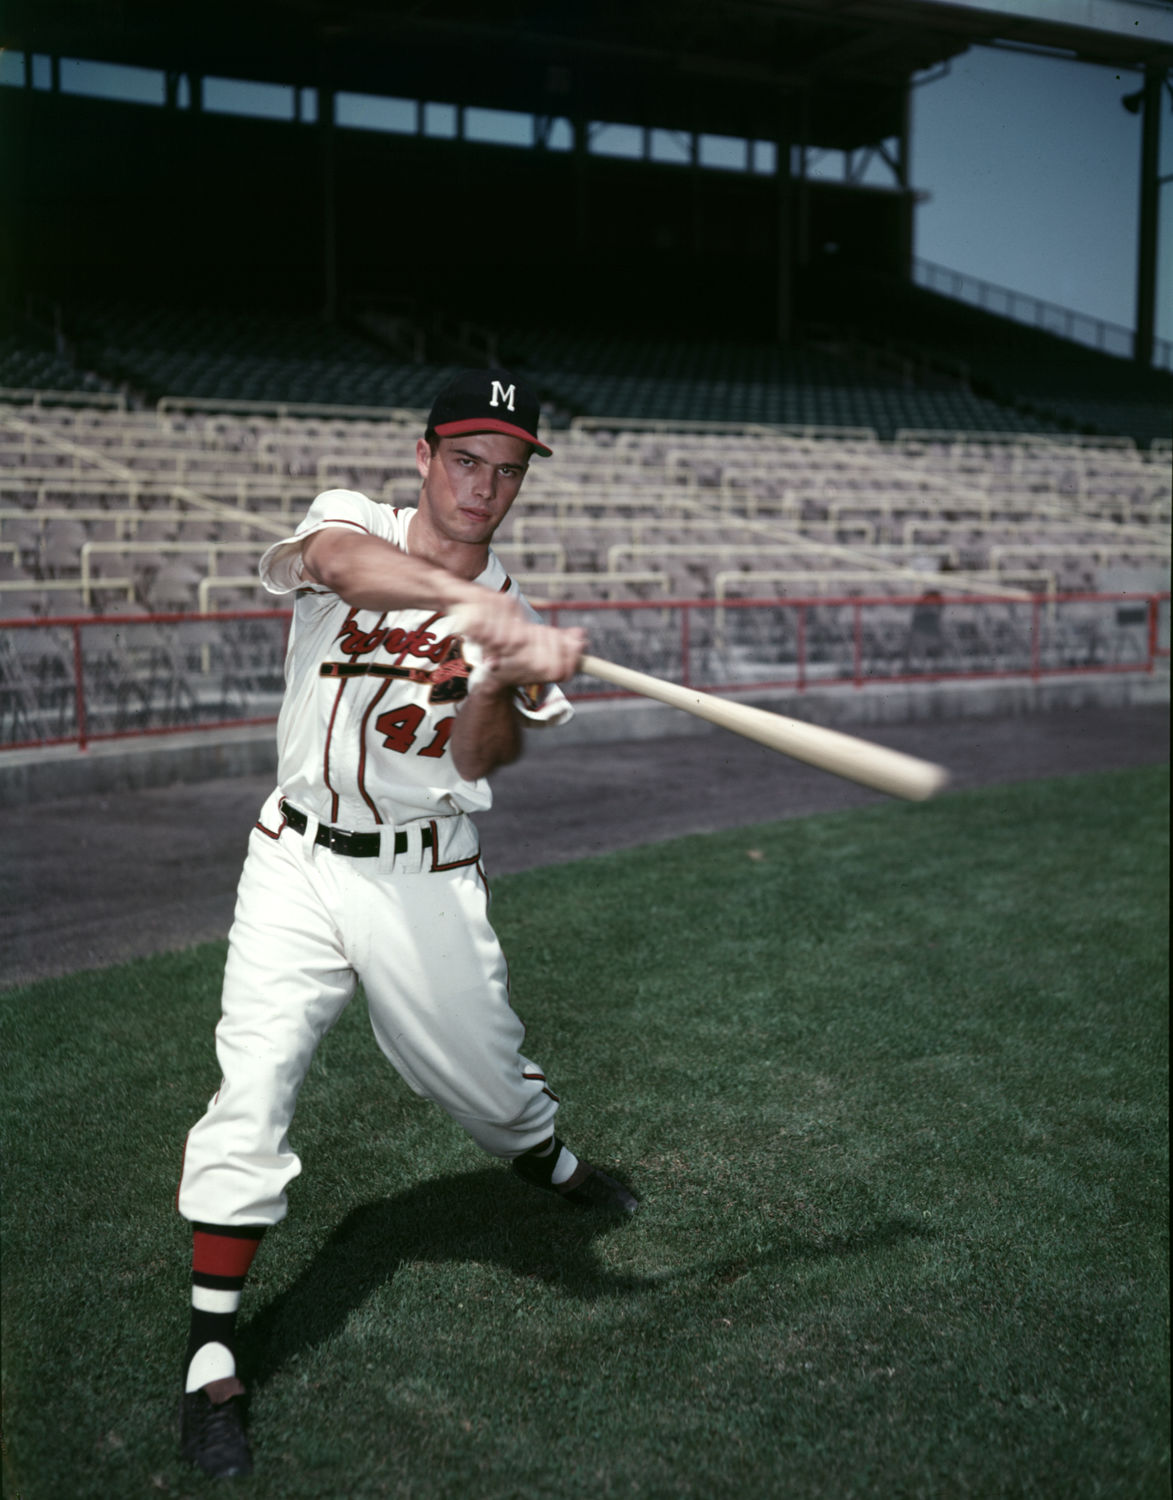 Eddie Mathews Posing With Bat Look Magazine Shoot C 1955